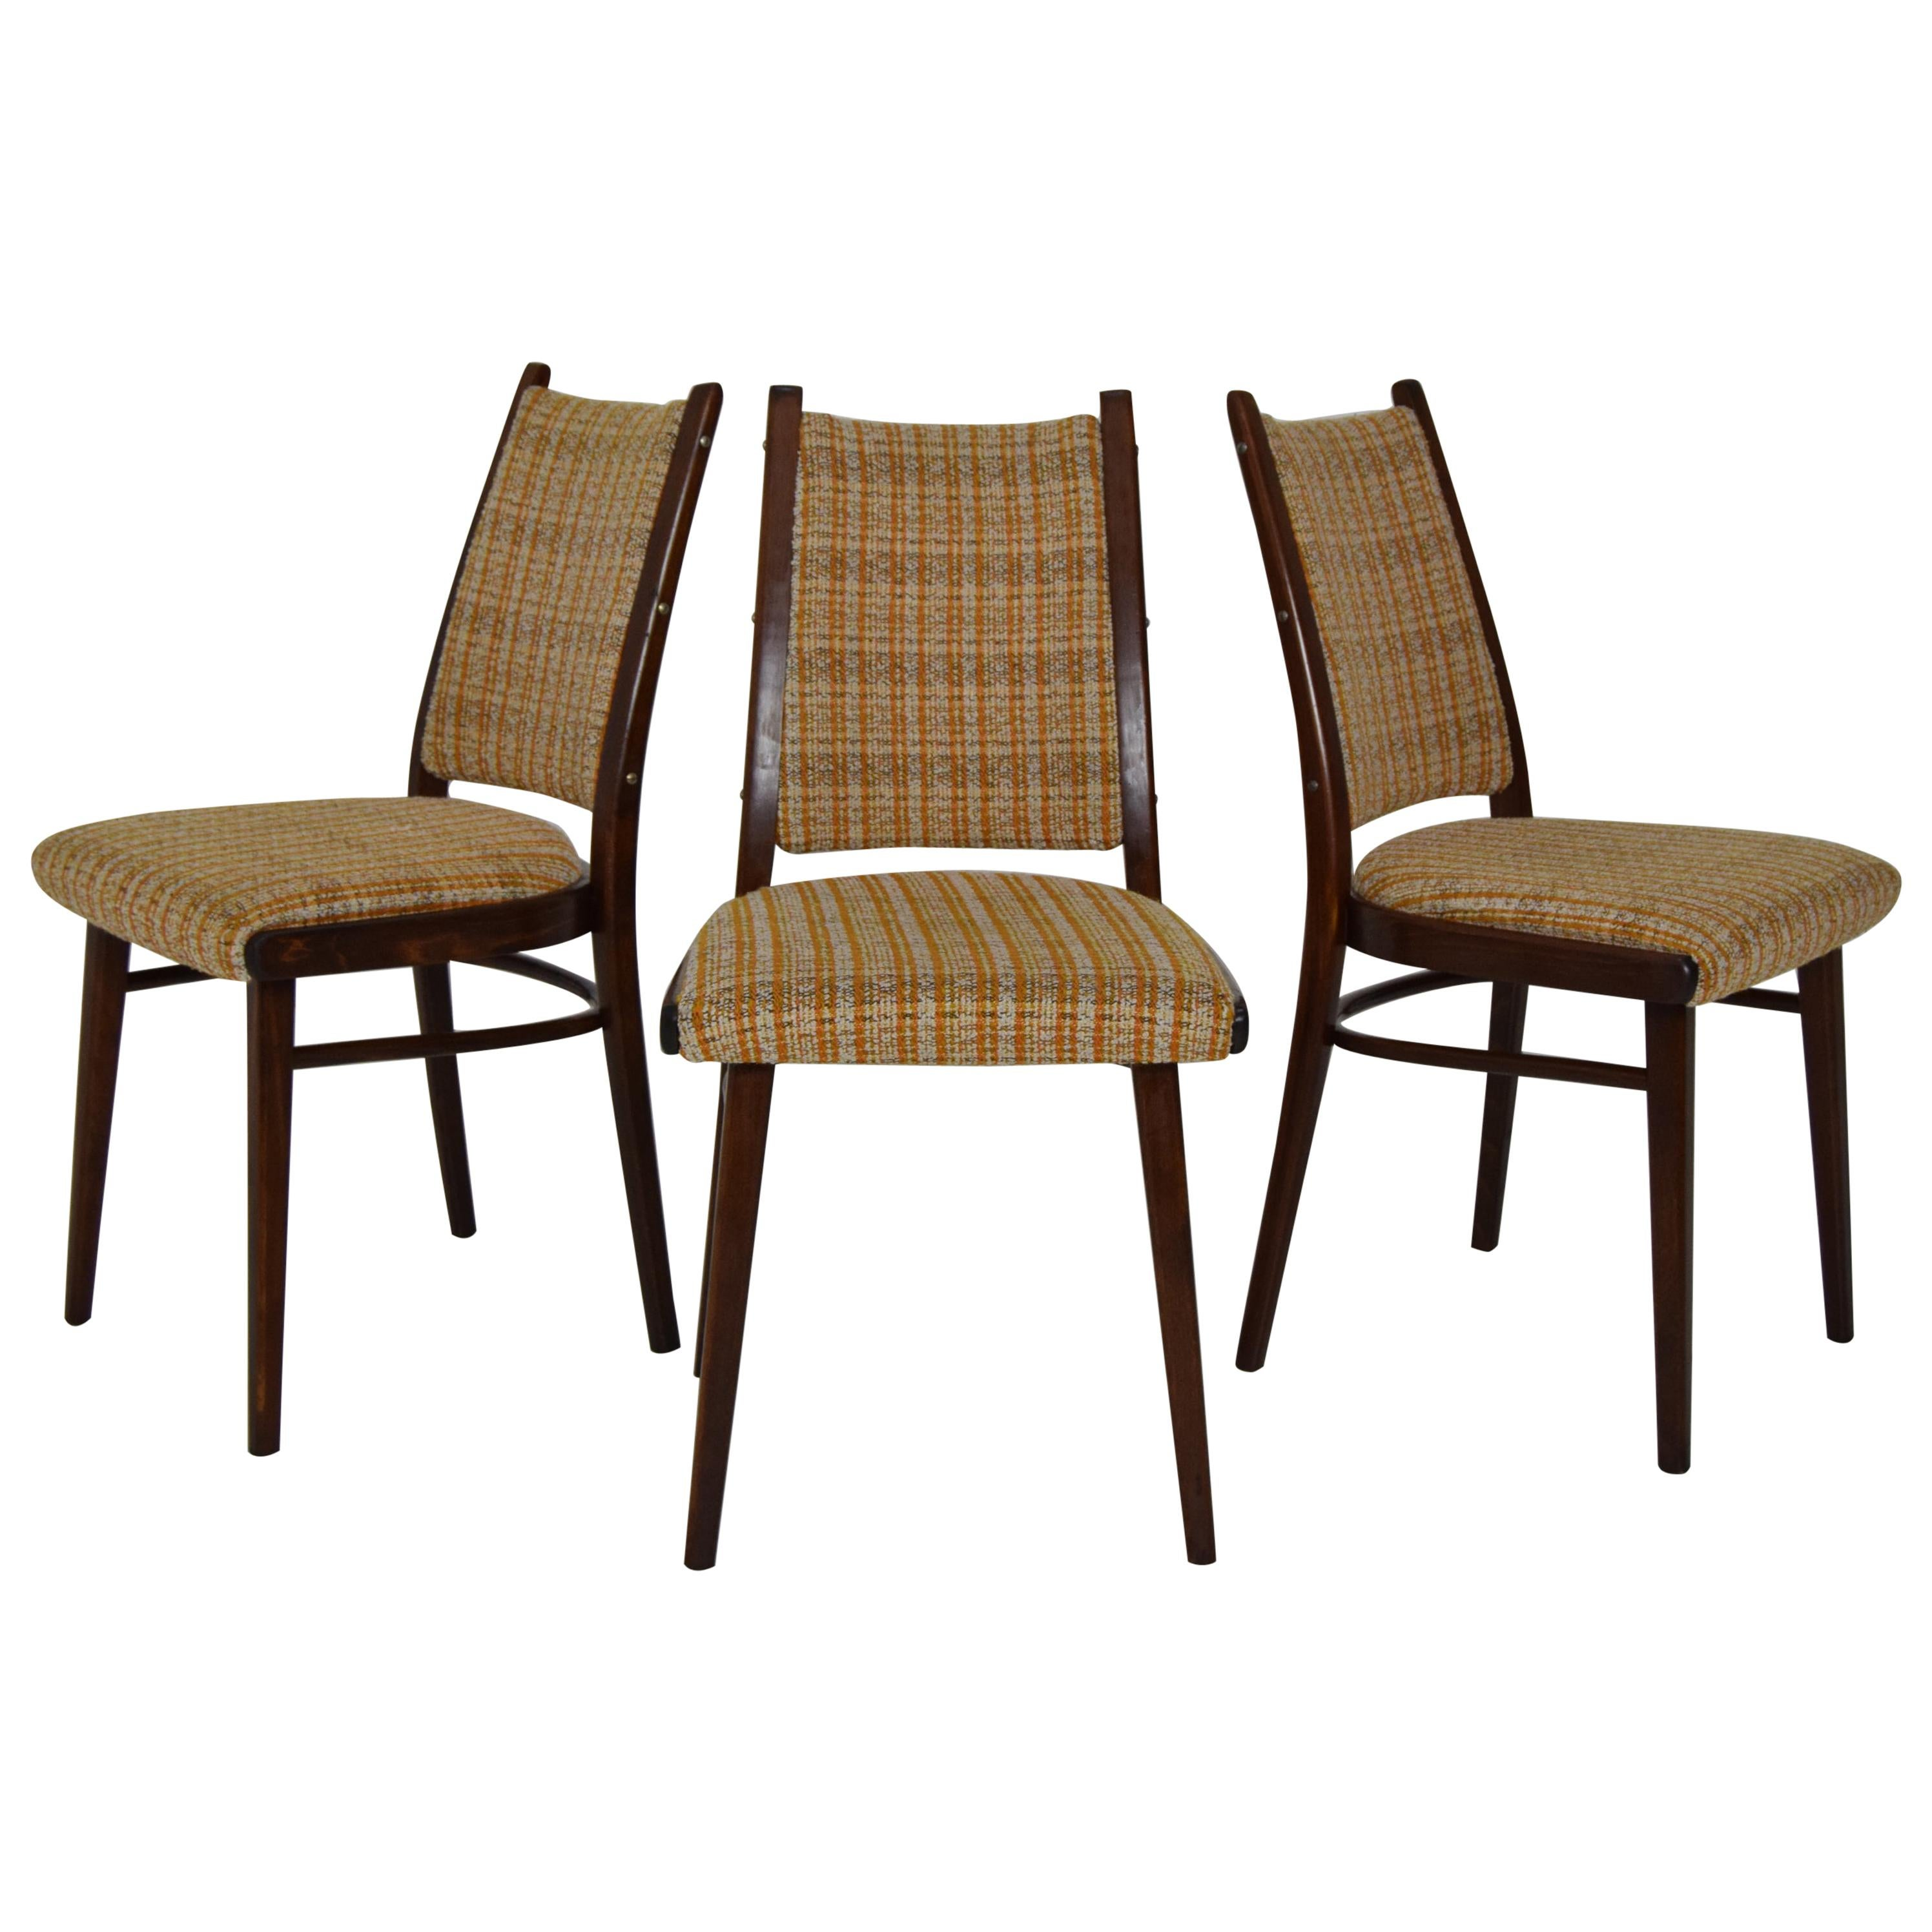 Midcentury Set of Three Chairs by Ton, 1960s